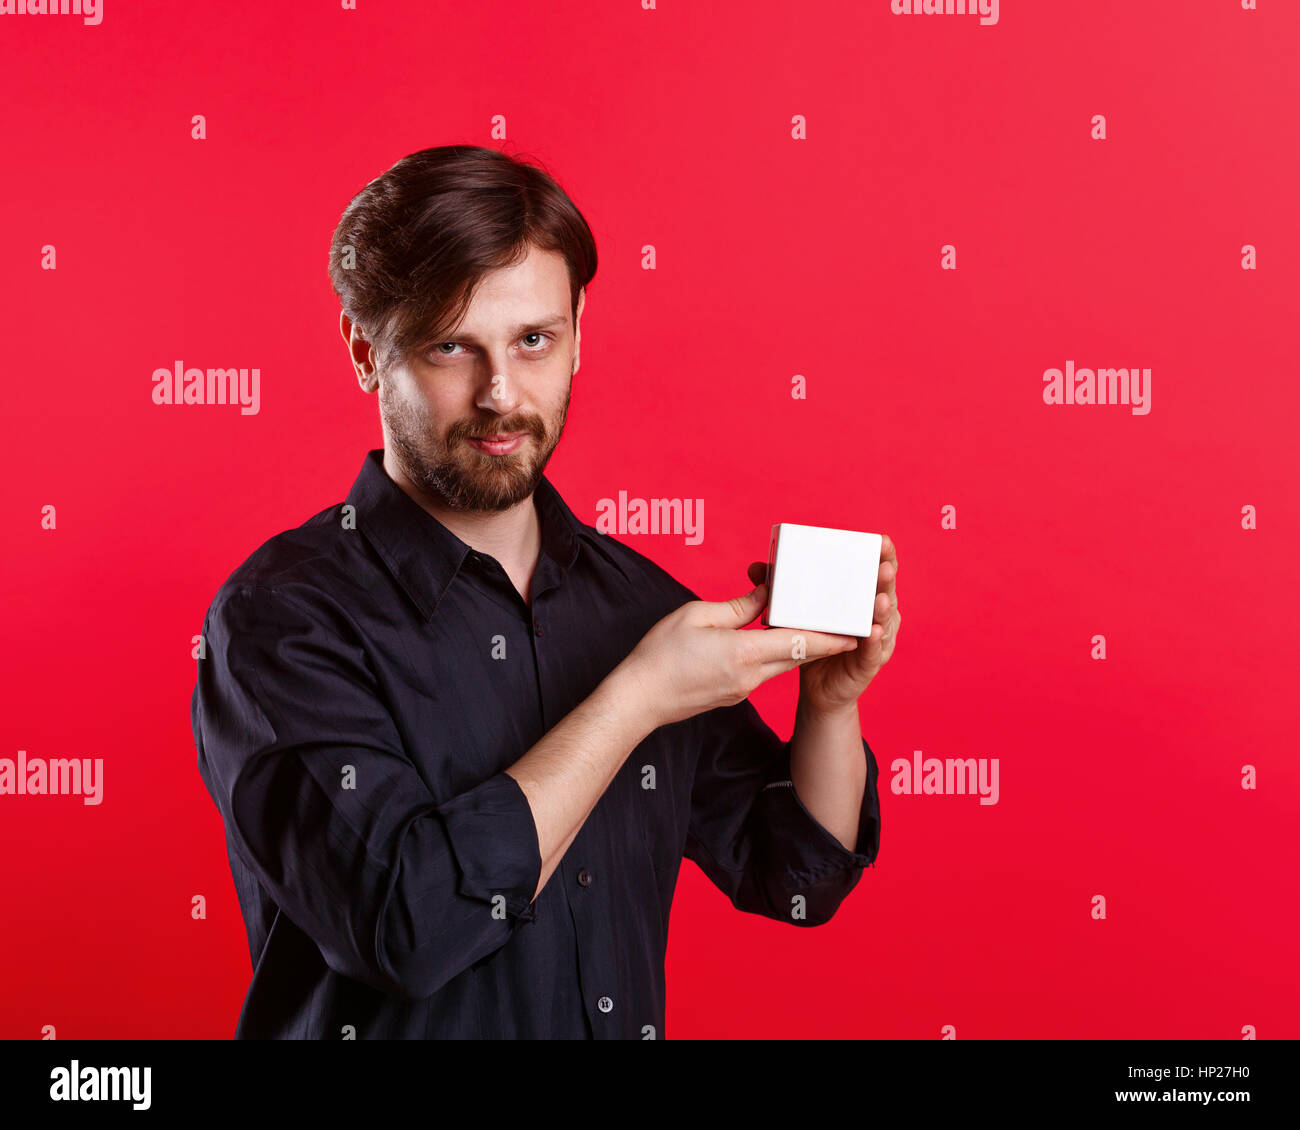 Man holding an empty cube. Advertising Space. Attractive man shows space for copy. Demonstration. - Stock Image